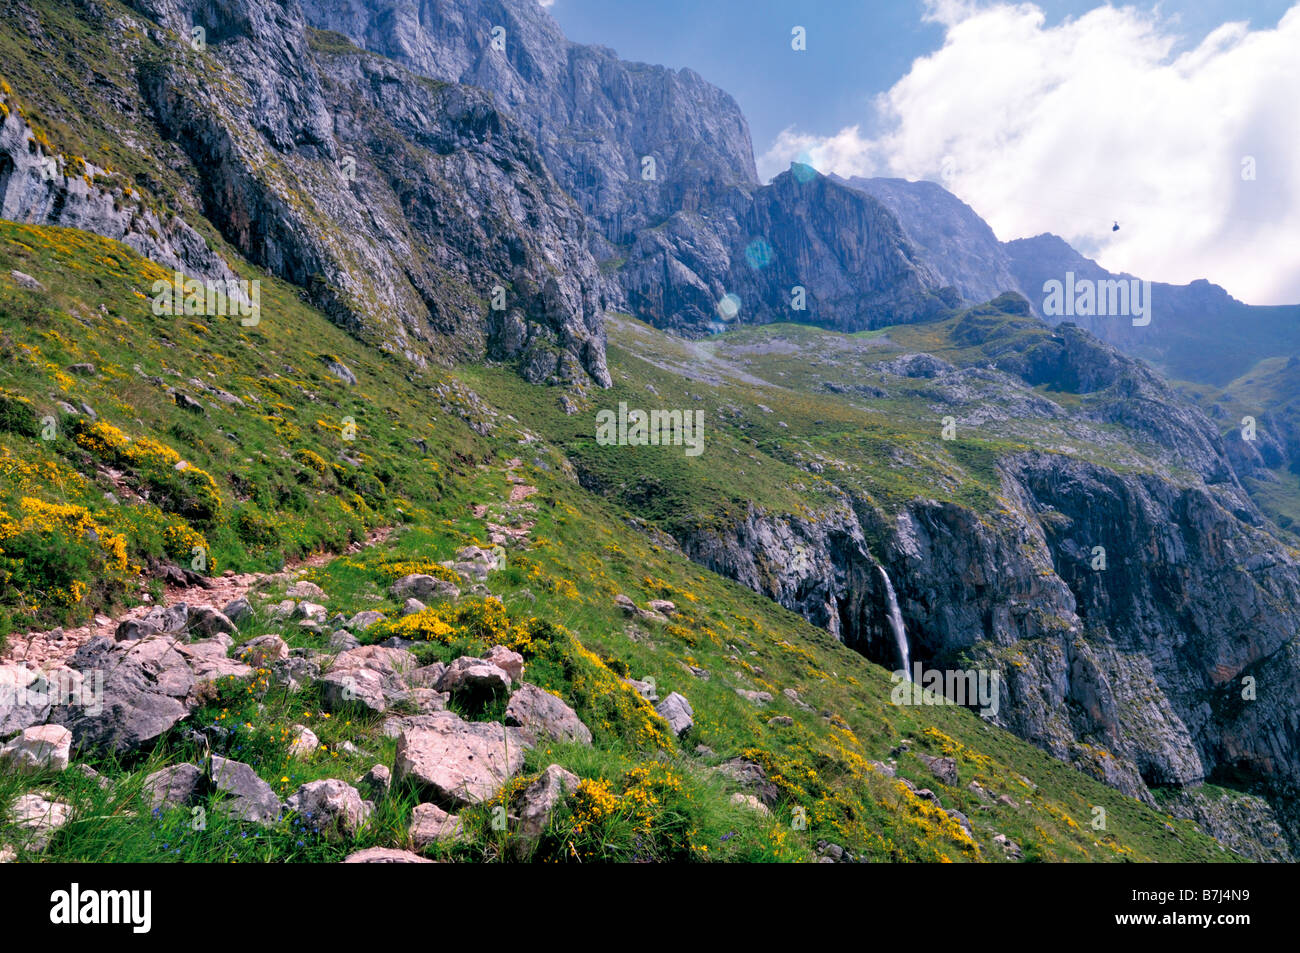 View to the mountain pics around Fuente De in the Nature Park Picos de Europa in Cantabria, Spain - Stock Image